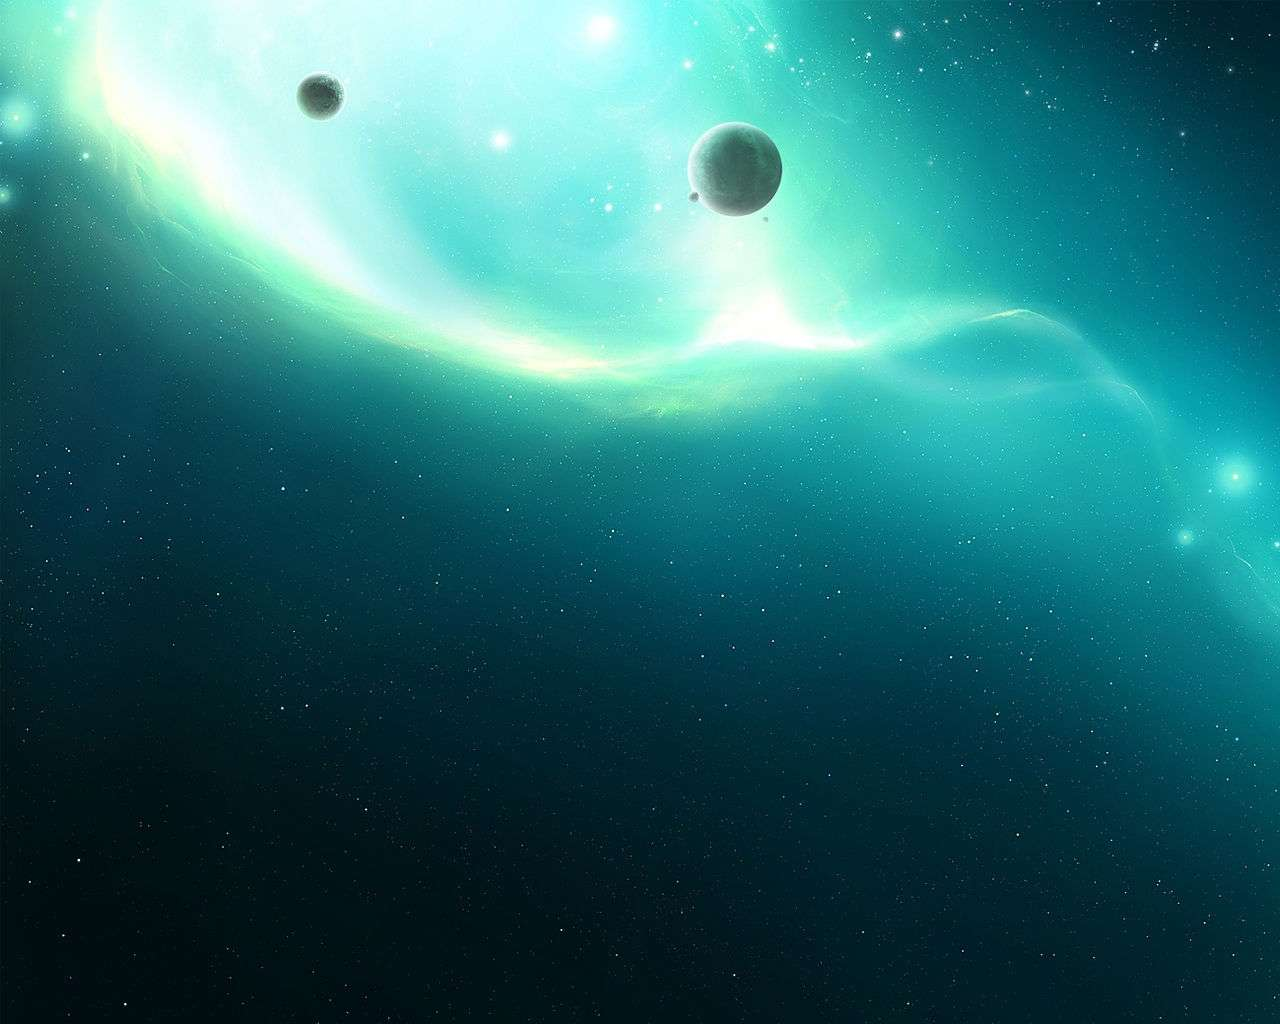 Space Wallpaper 025